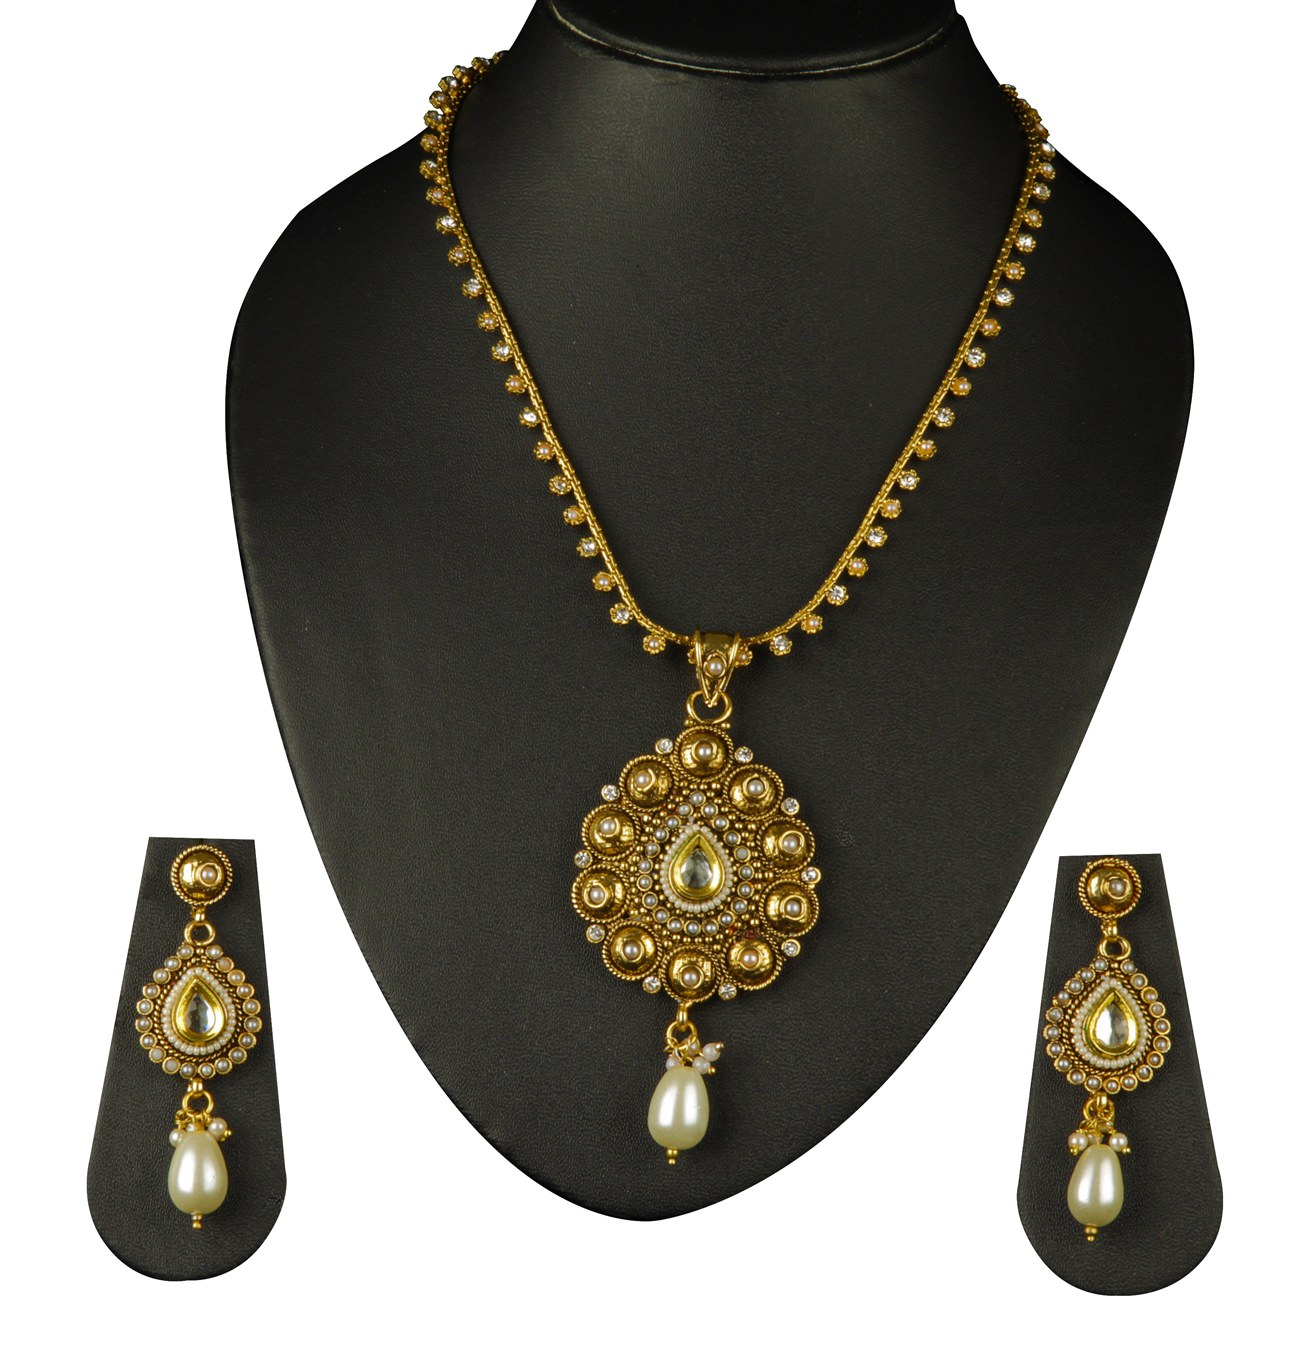 Gold Plated Necklace Earrings Set Indian Traditional: Indian Bollywood Fashion Designer Jewelry Gold Plated